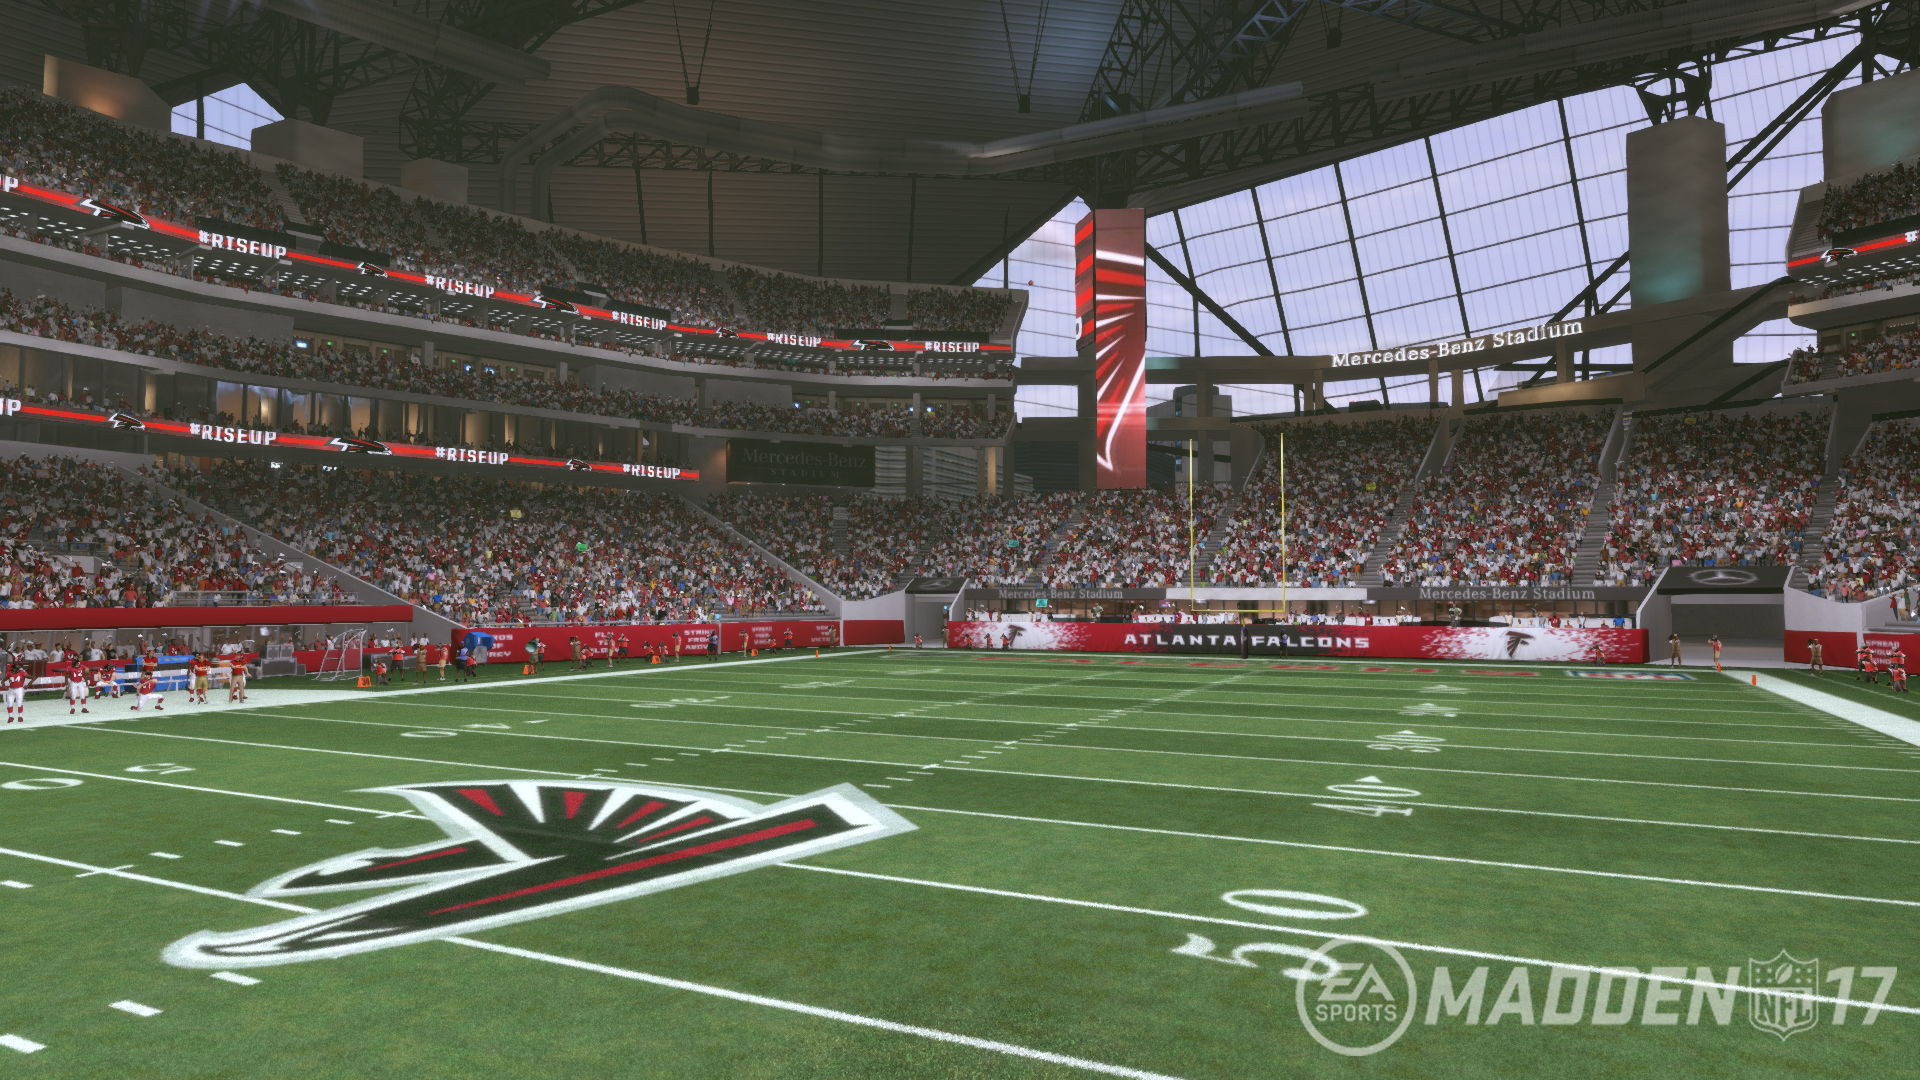 Mercedes benz stadium in madden nfl 17 the falcoholic for Mercedes benz franchise